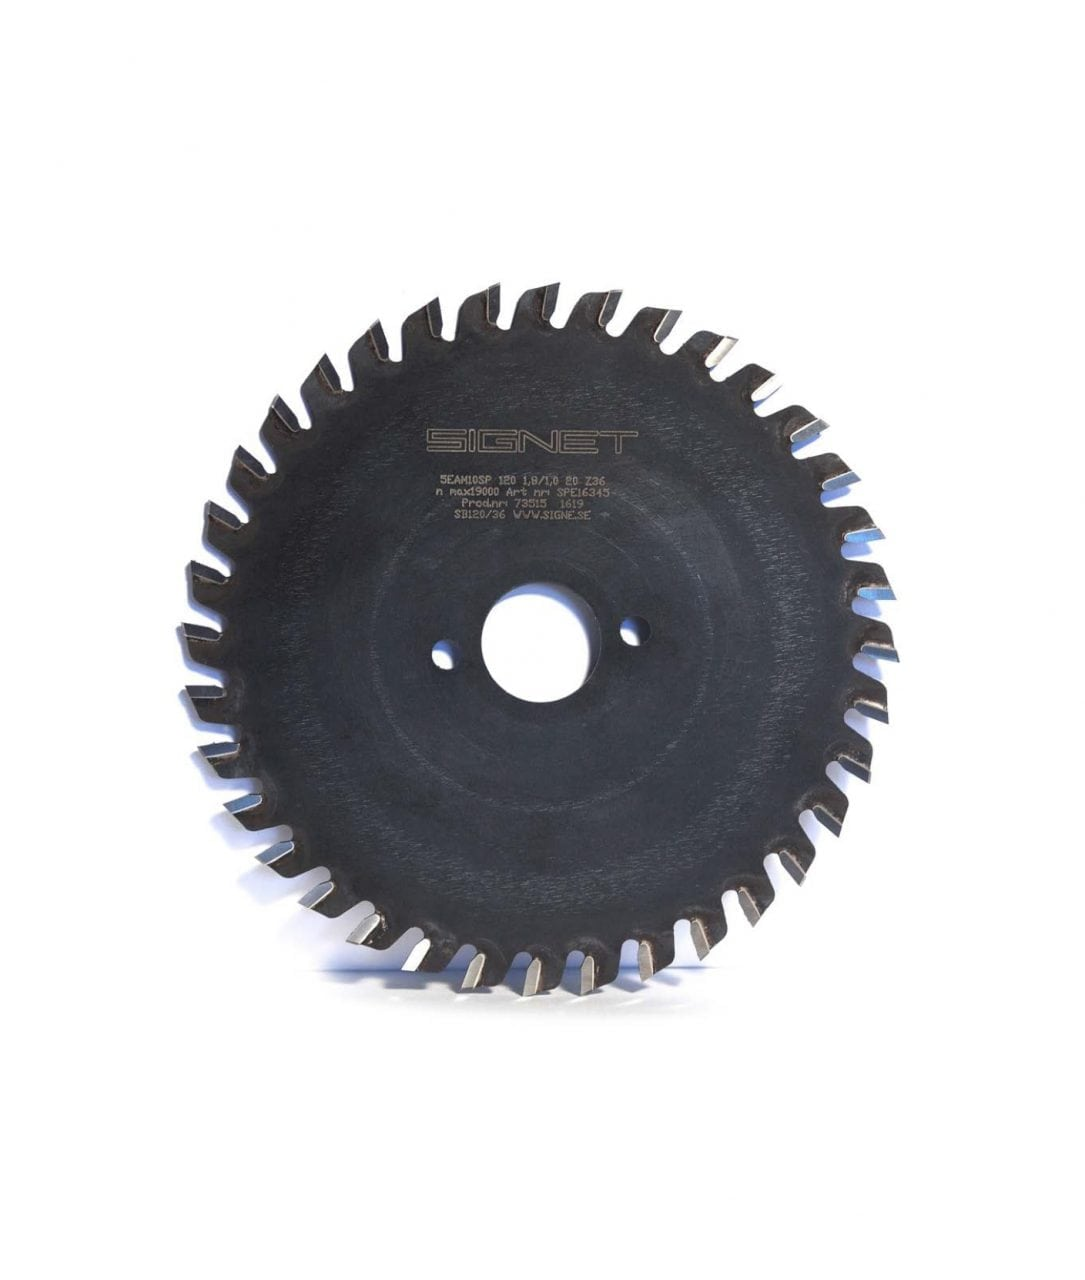 Saw blade for circular saw Varga 11 & 21-15 (SSB-120)